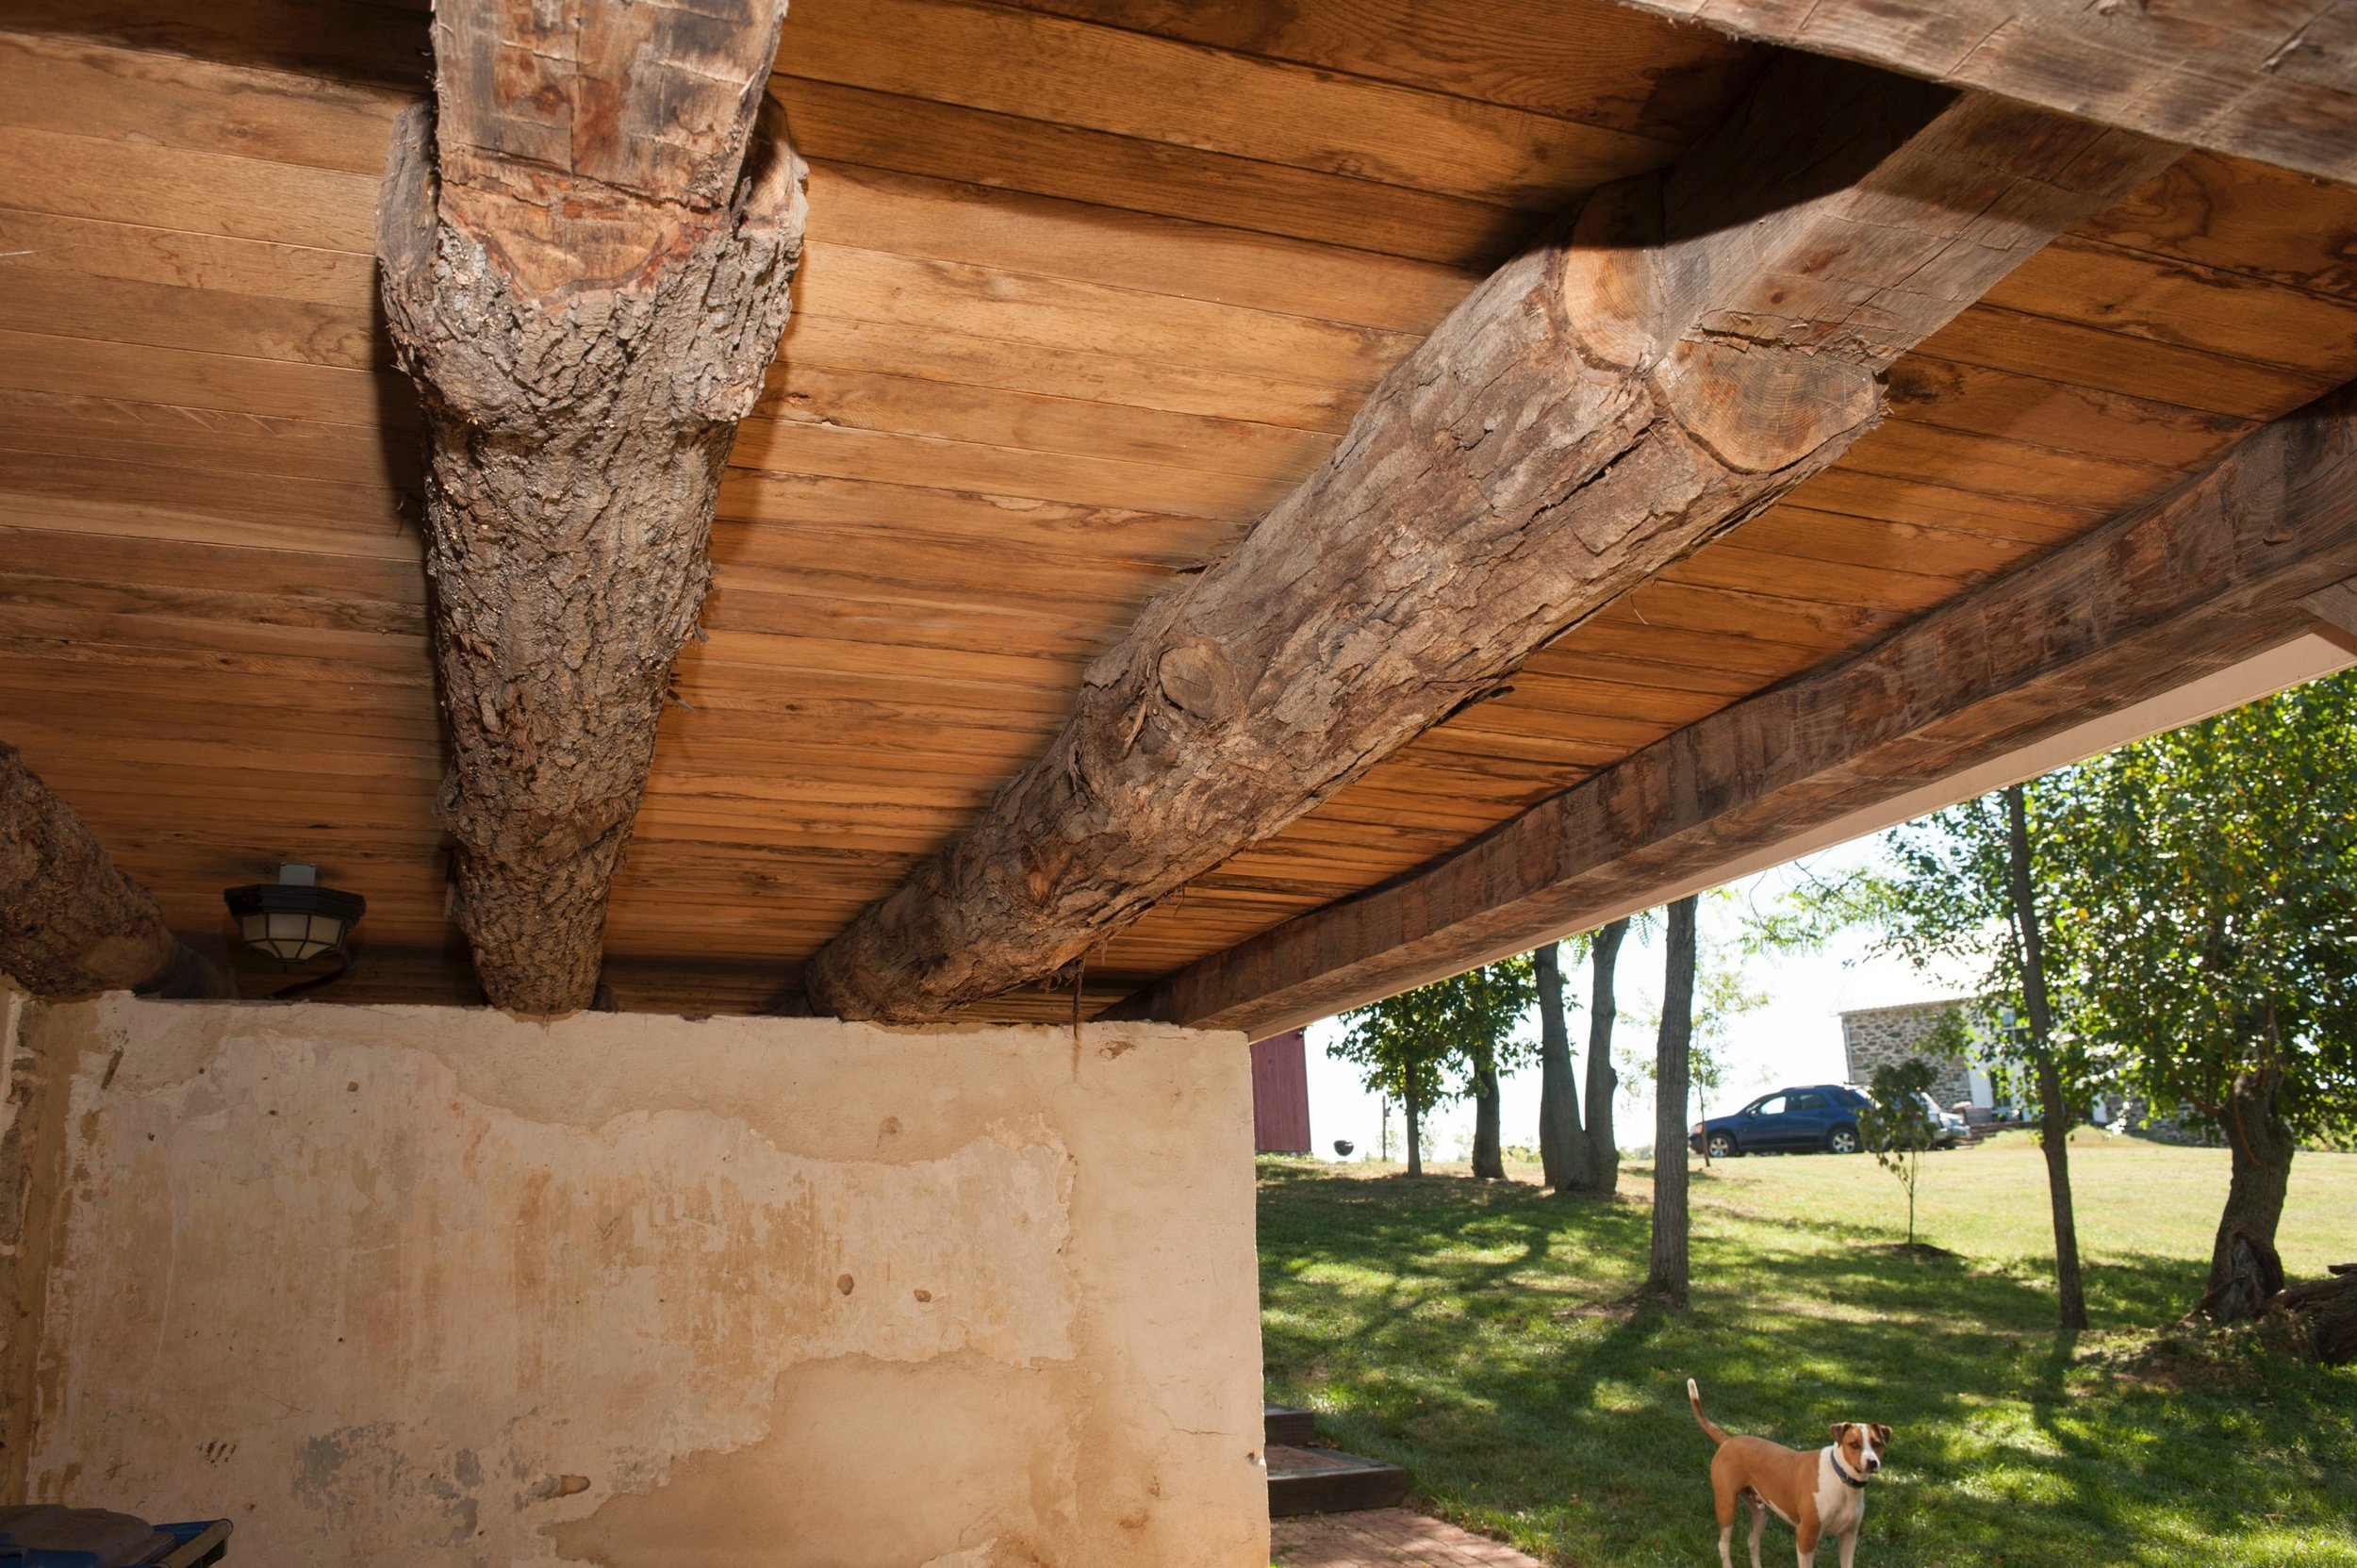 Hand hewn beams support porch.